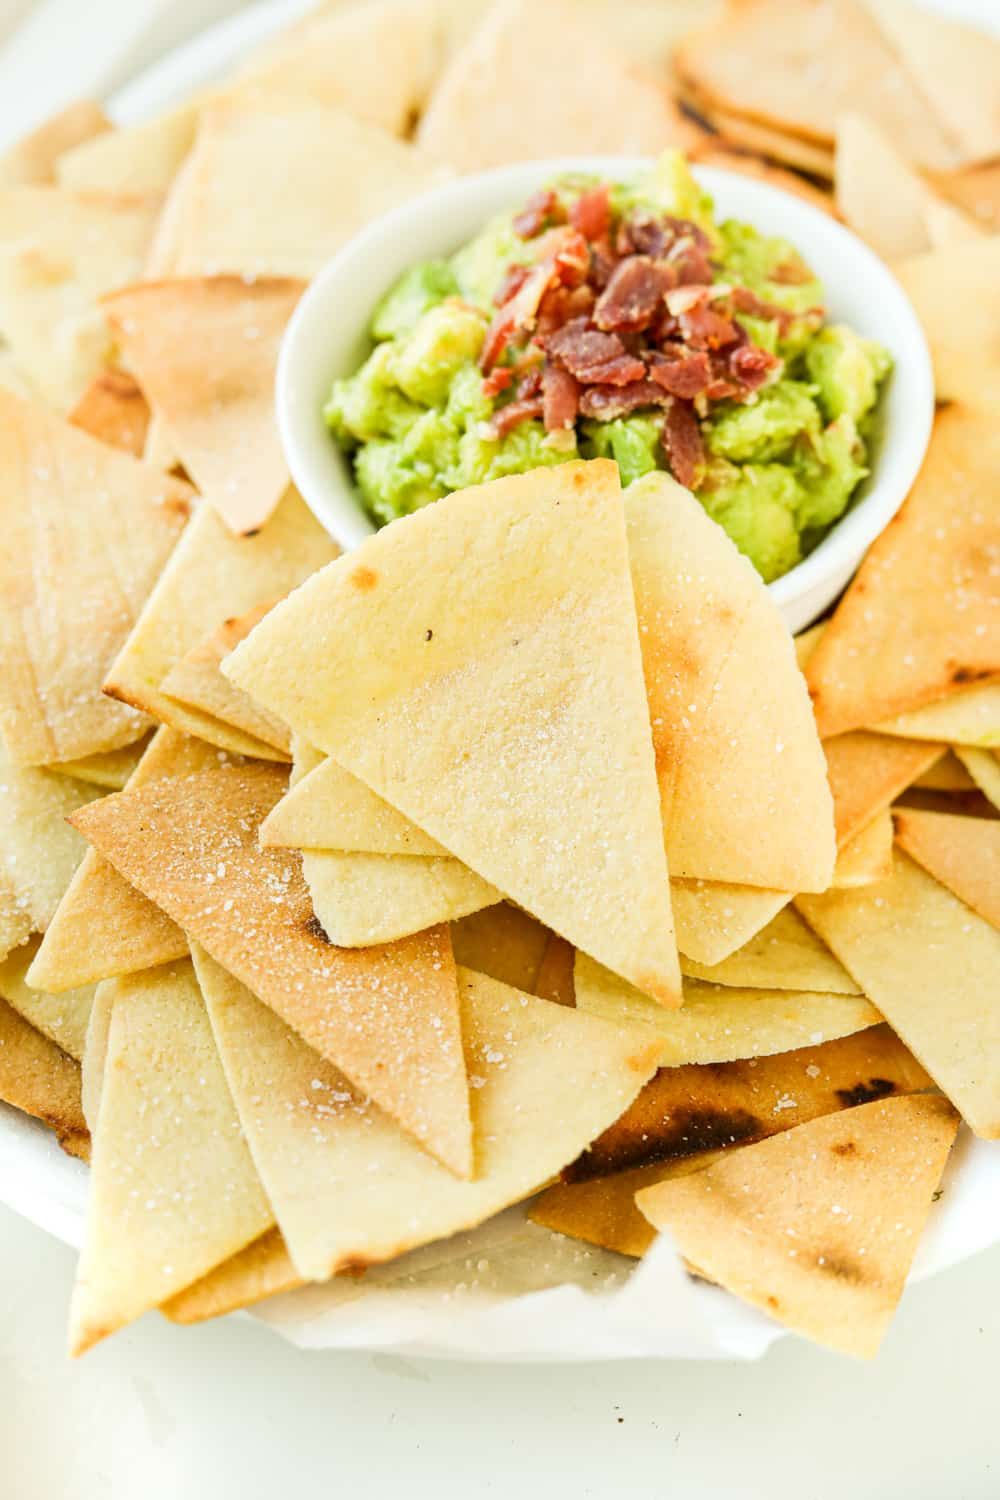 The side of a white platter that's full of tortilla chips and guacamole